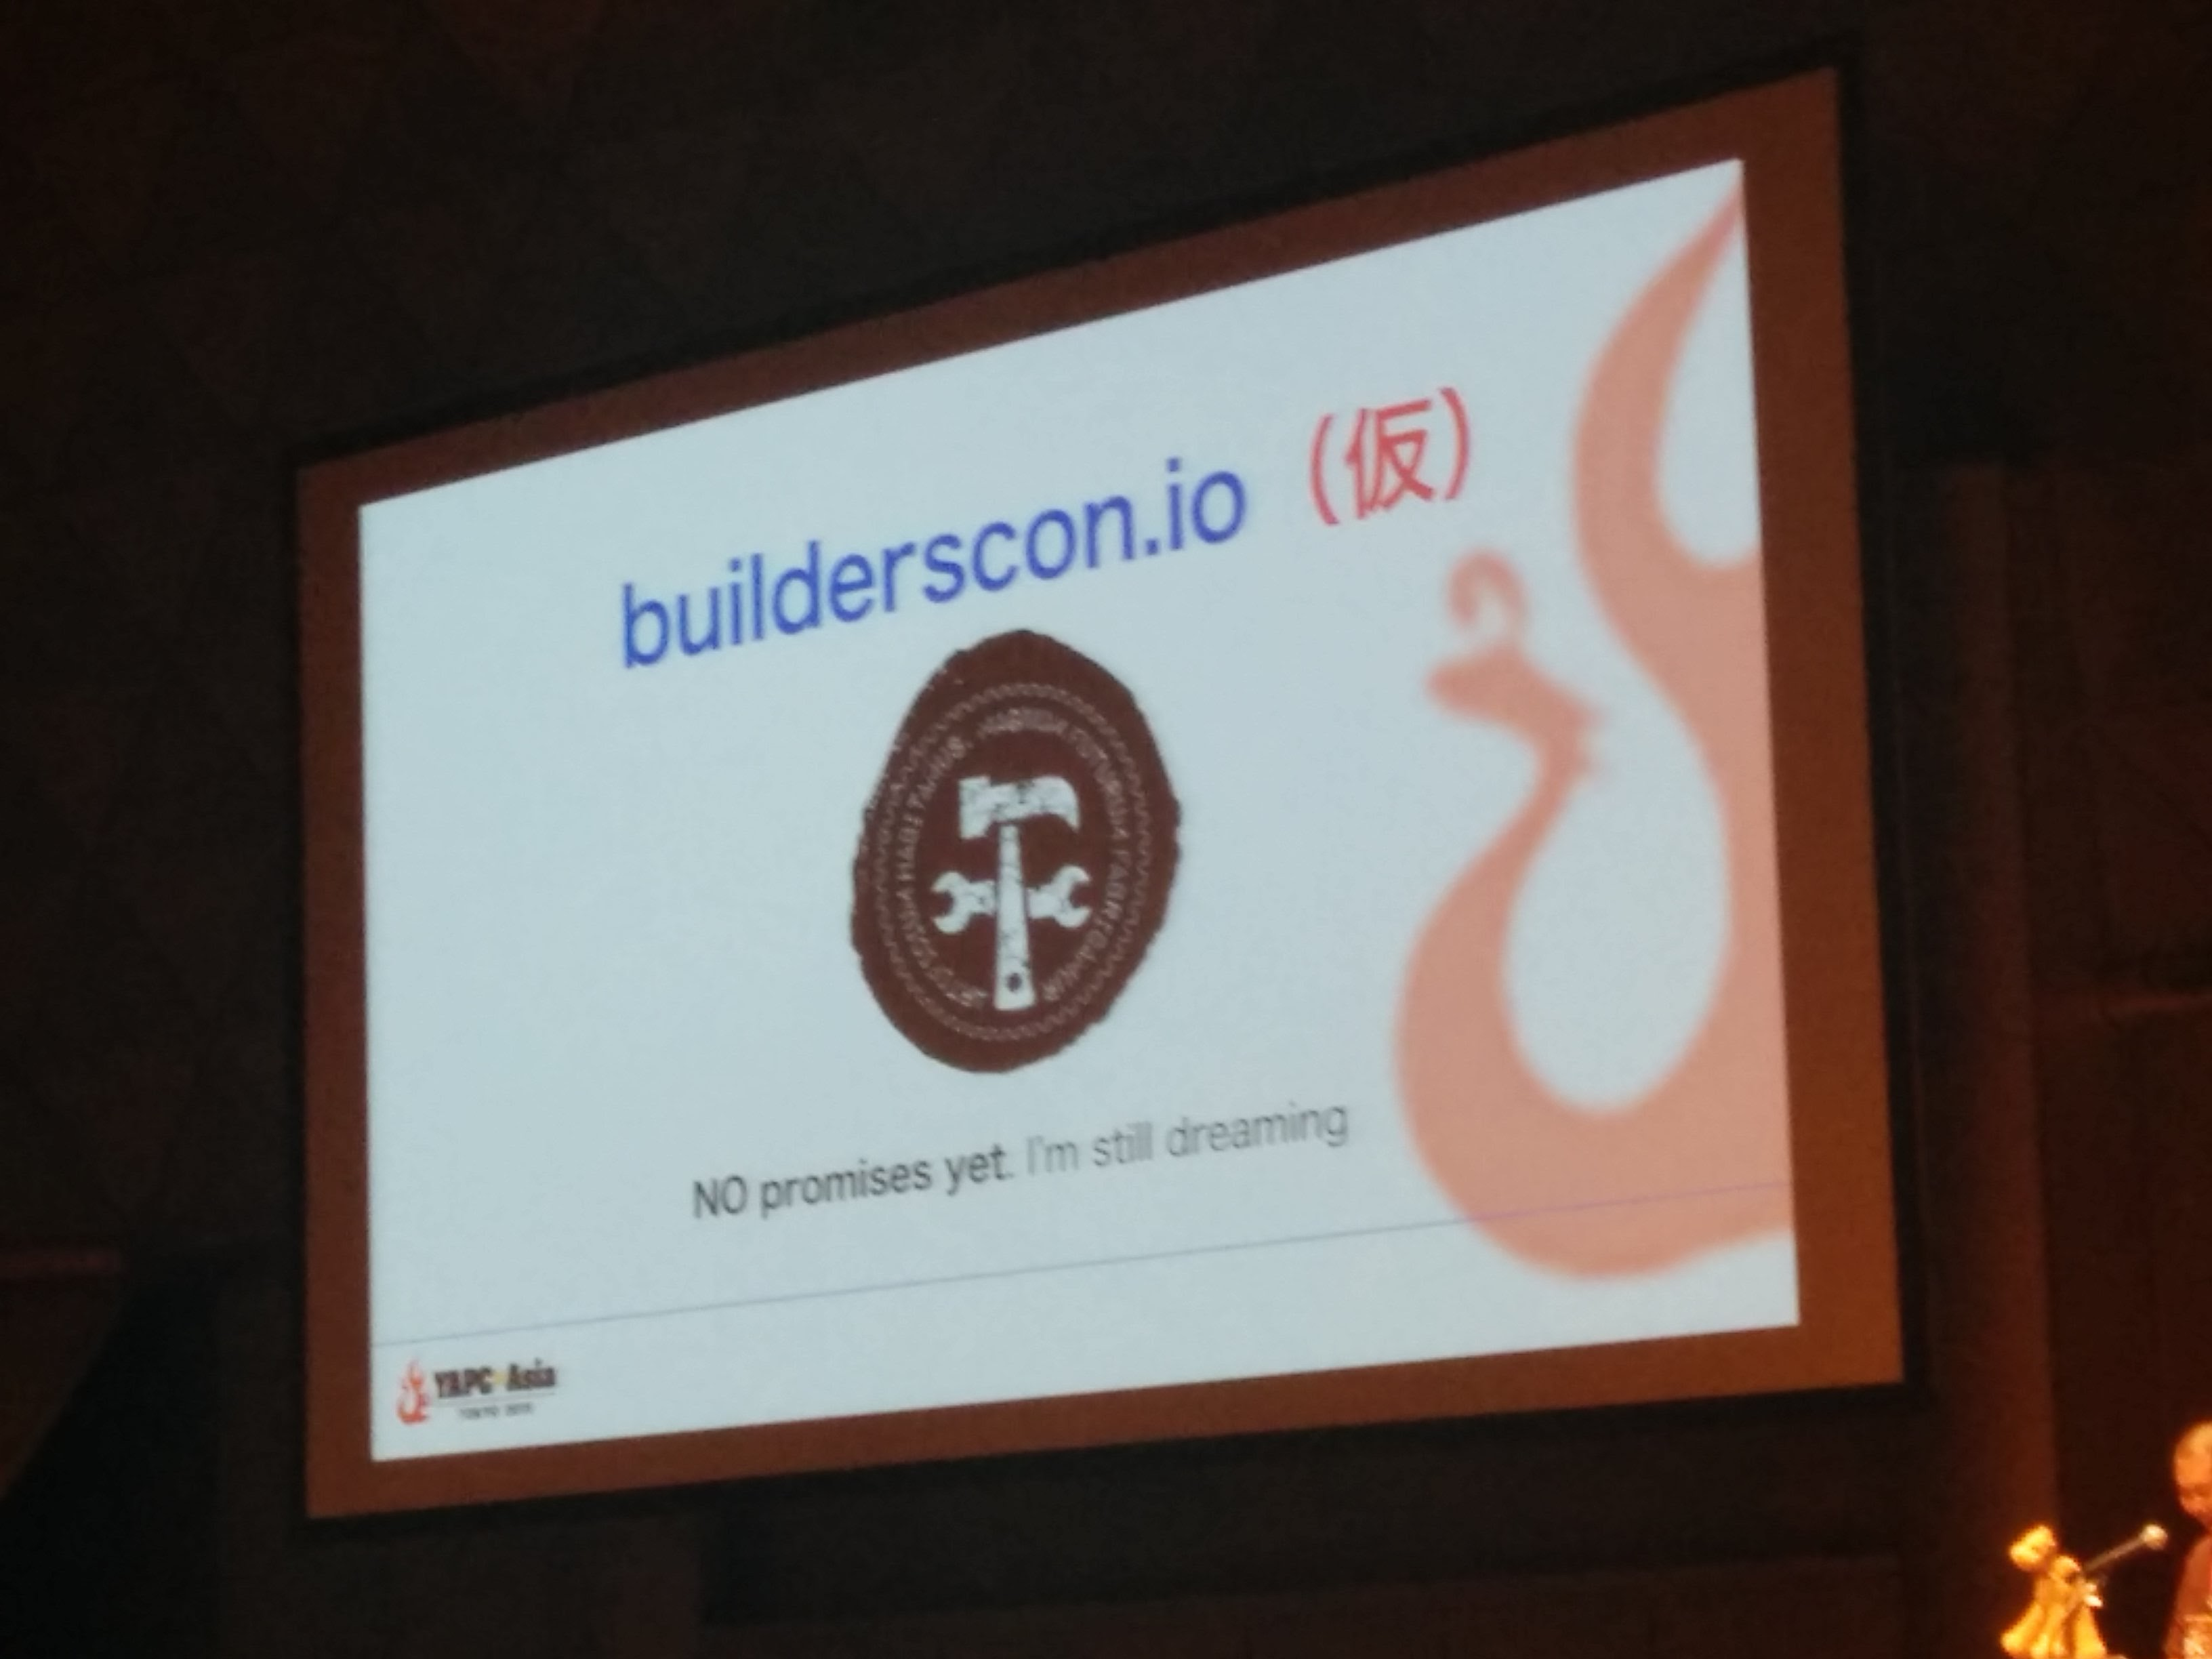 builderscon